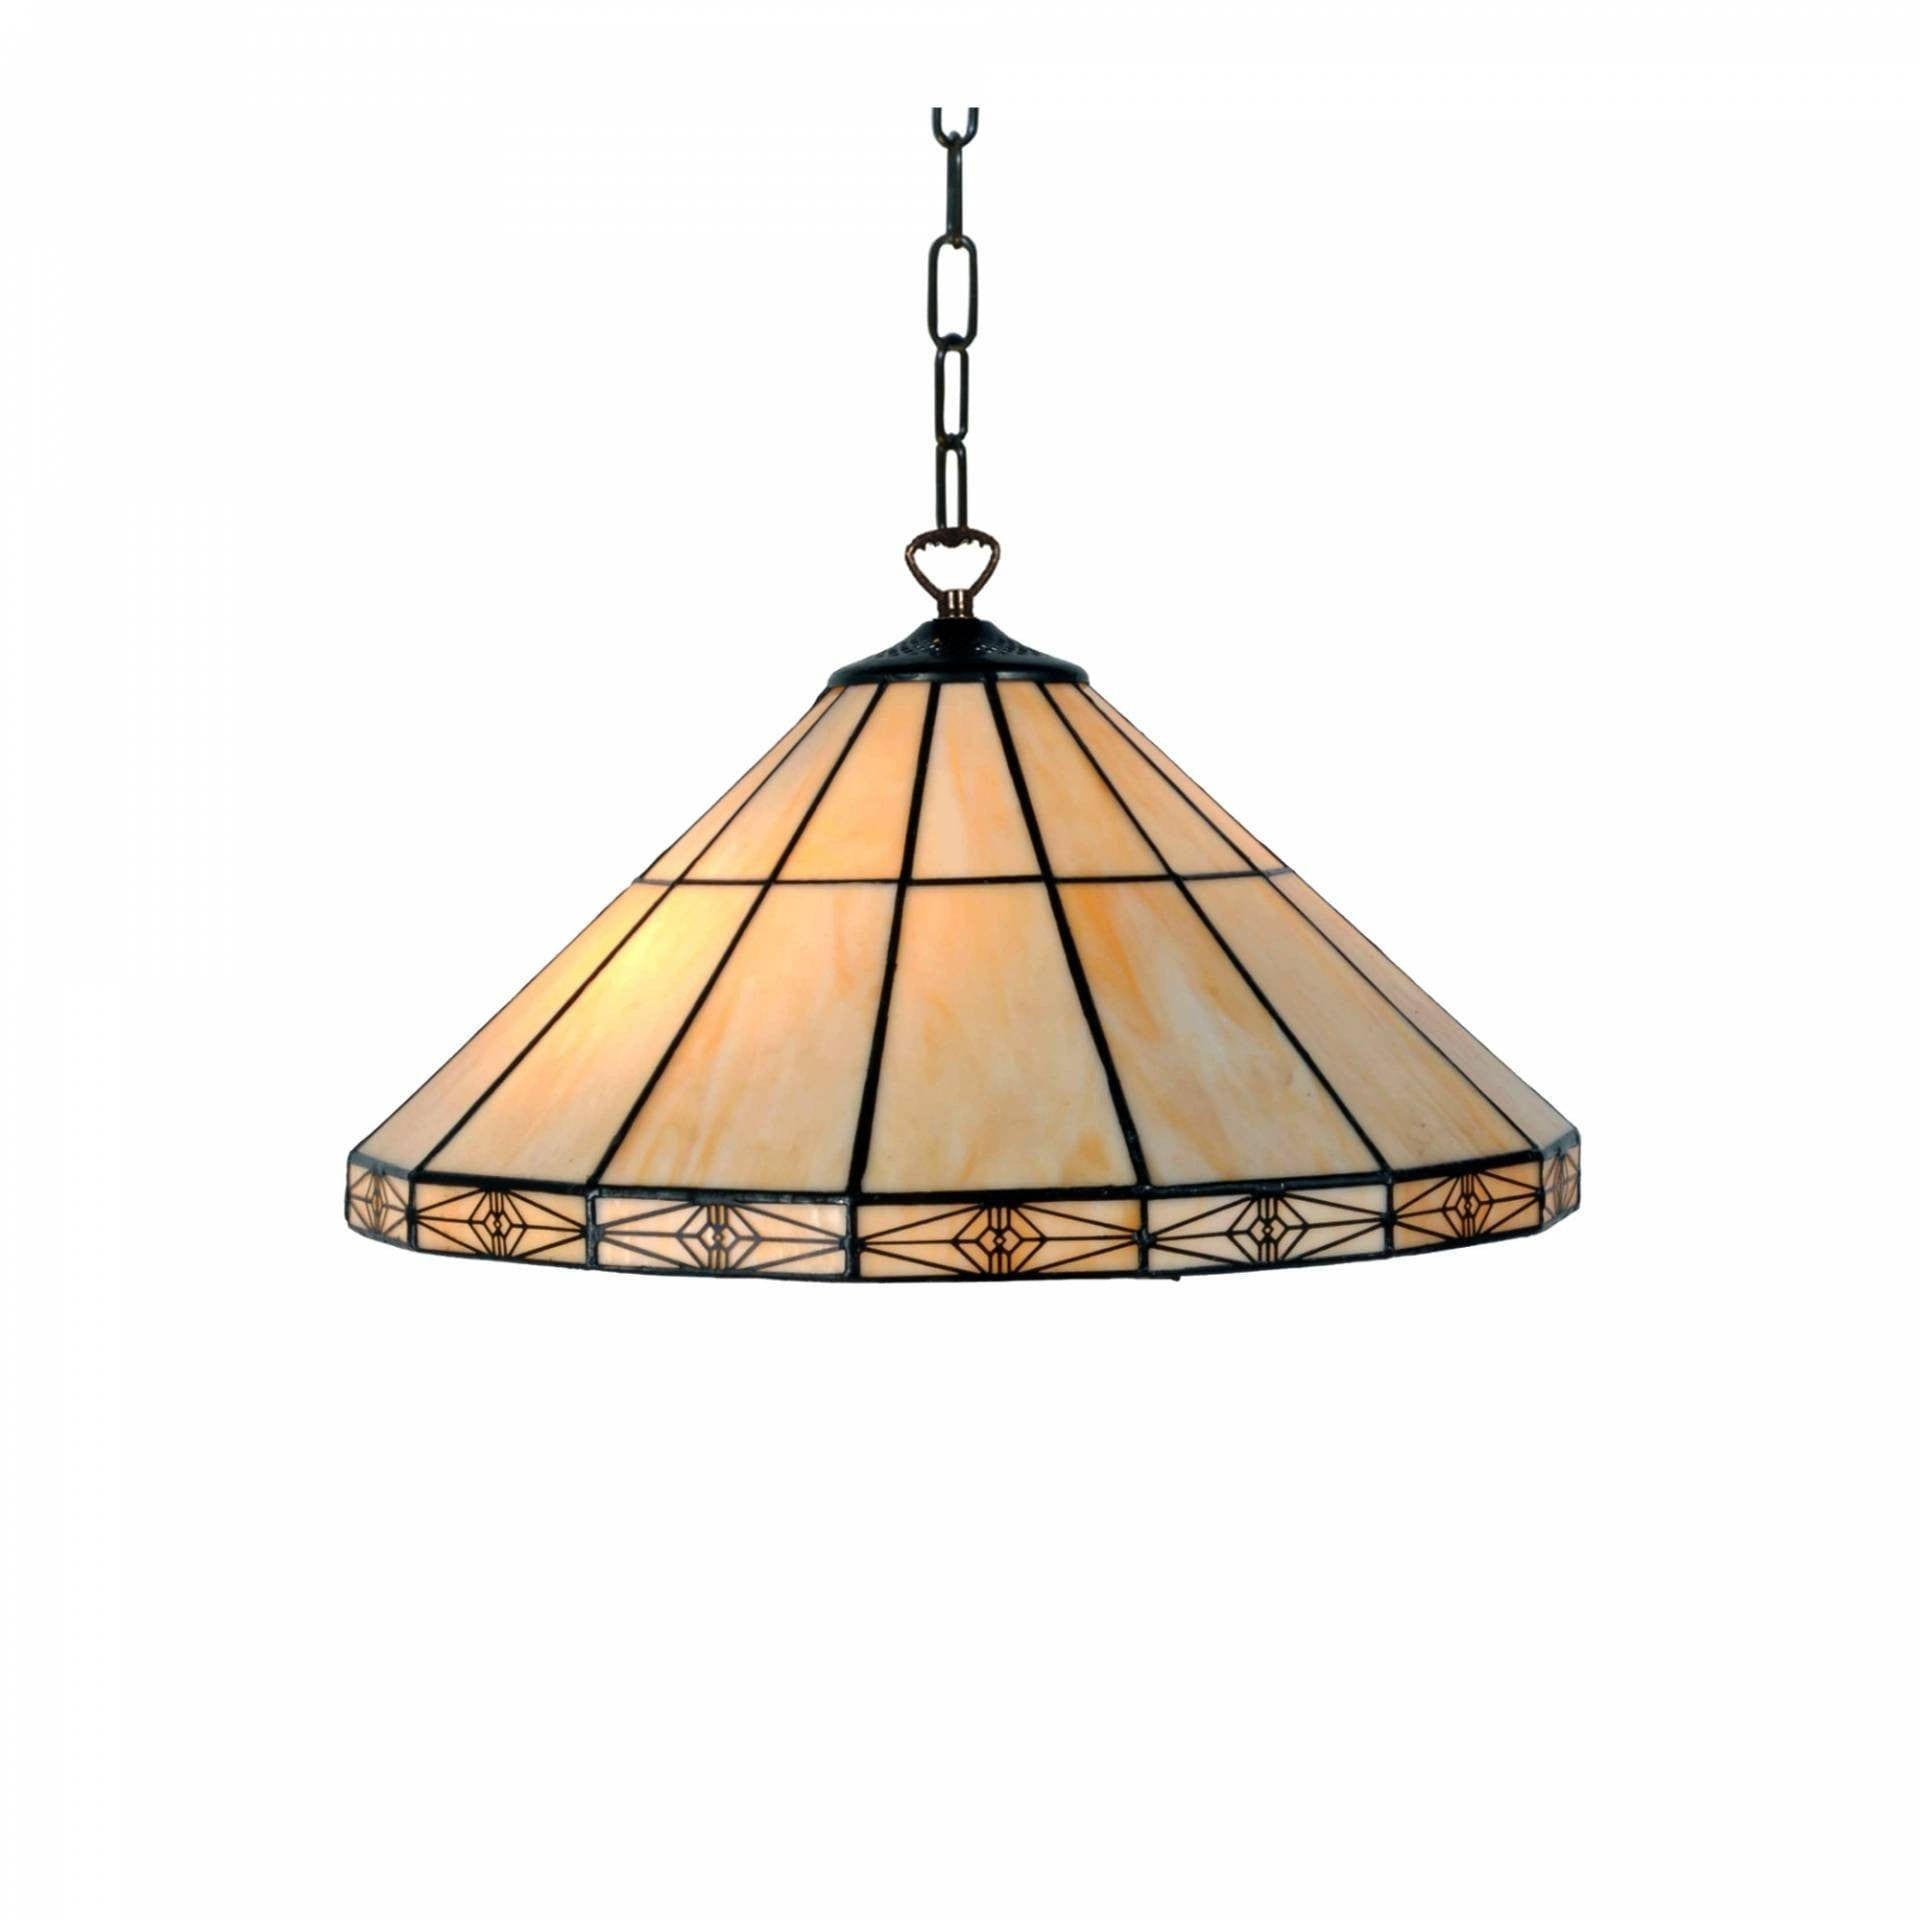 Tiffany Ceiling Pendant Lights - Dorchester Large Tiffany Ceiling Light Single Bulb Fitting ...  sc 1 st  Tiffany Lighting Direct & Dorchester Large Tiffany Ceiling Light single bulb fitting